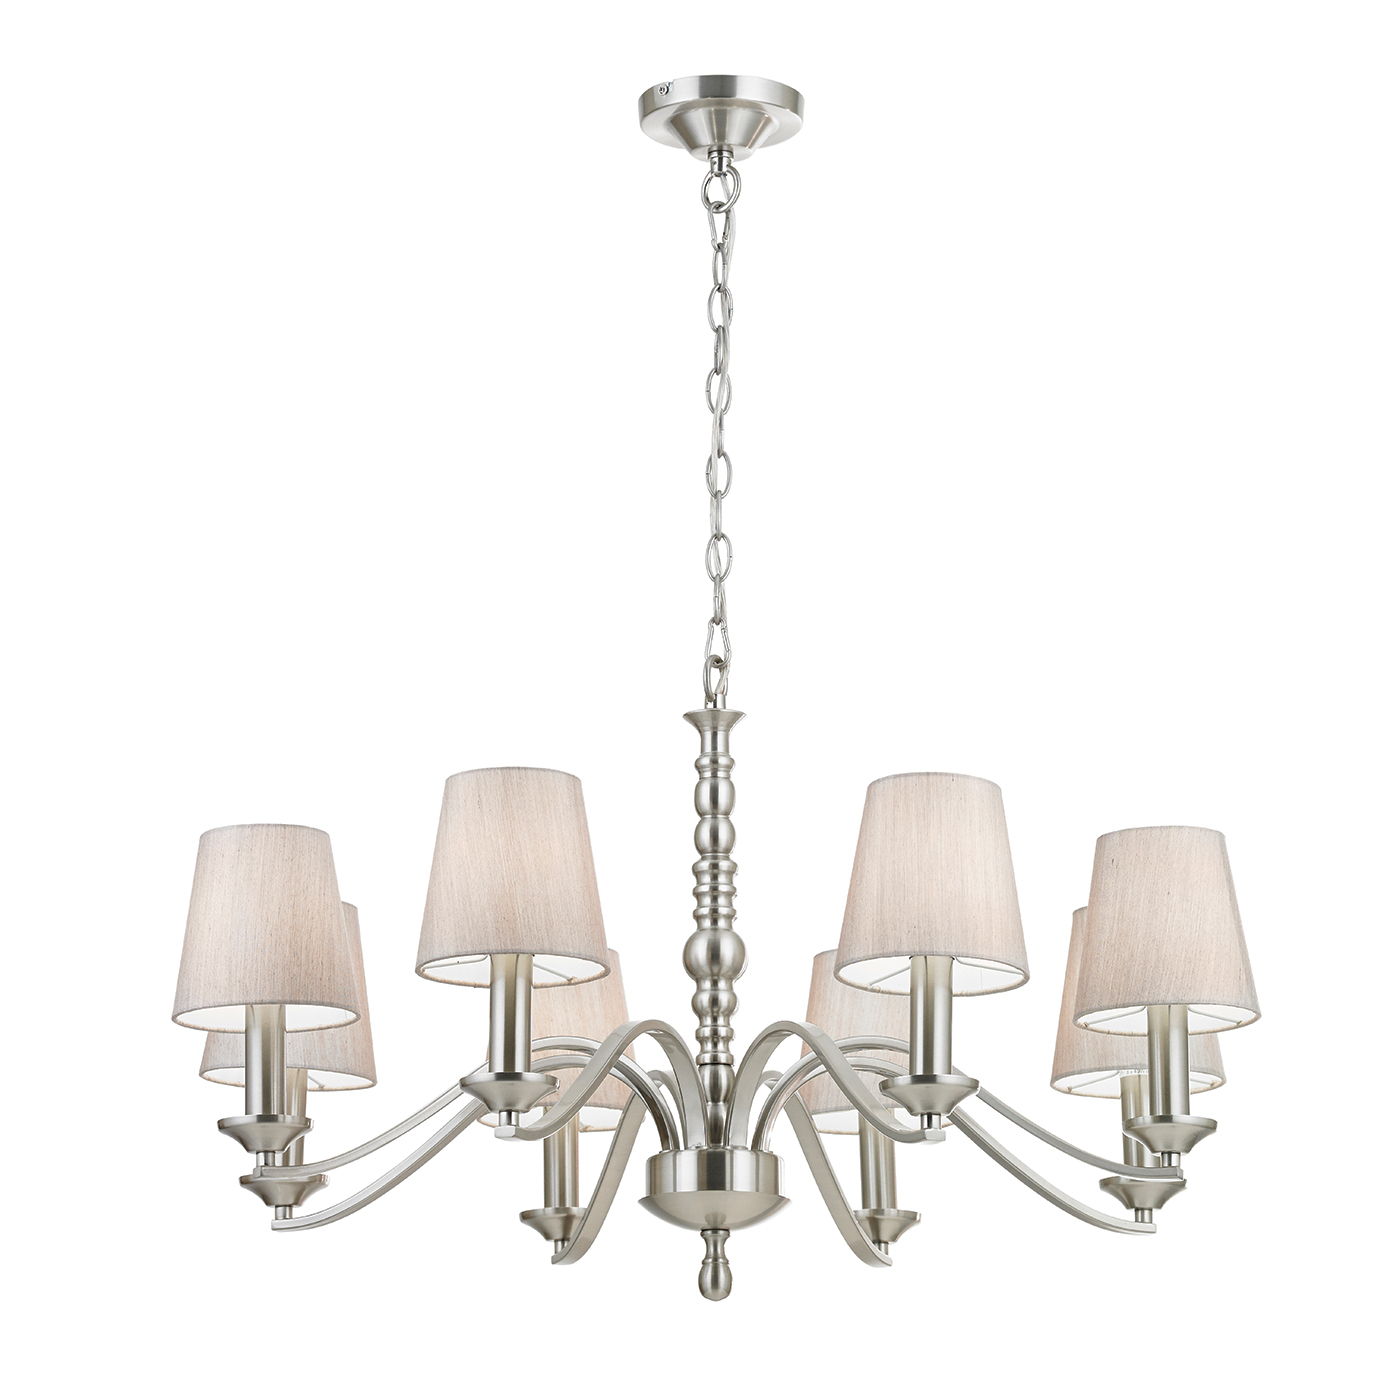 Endon Astaire chandelier 8x 40W Satin nickel effect plate & natural tc fabric